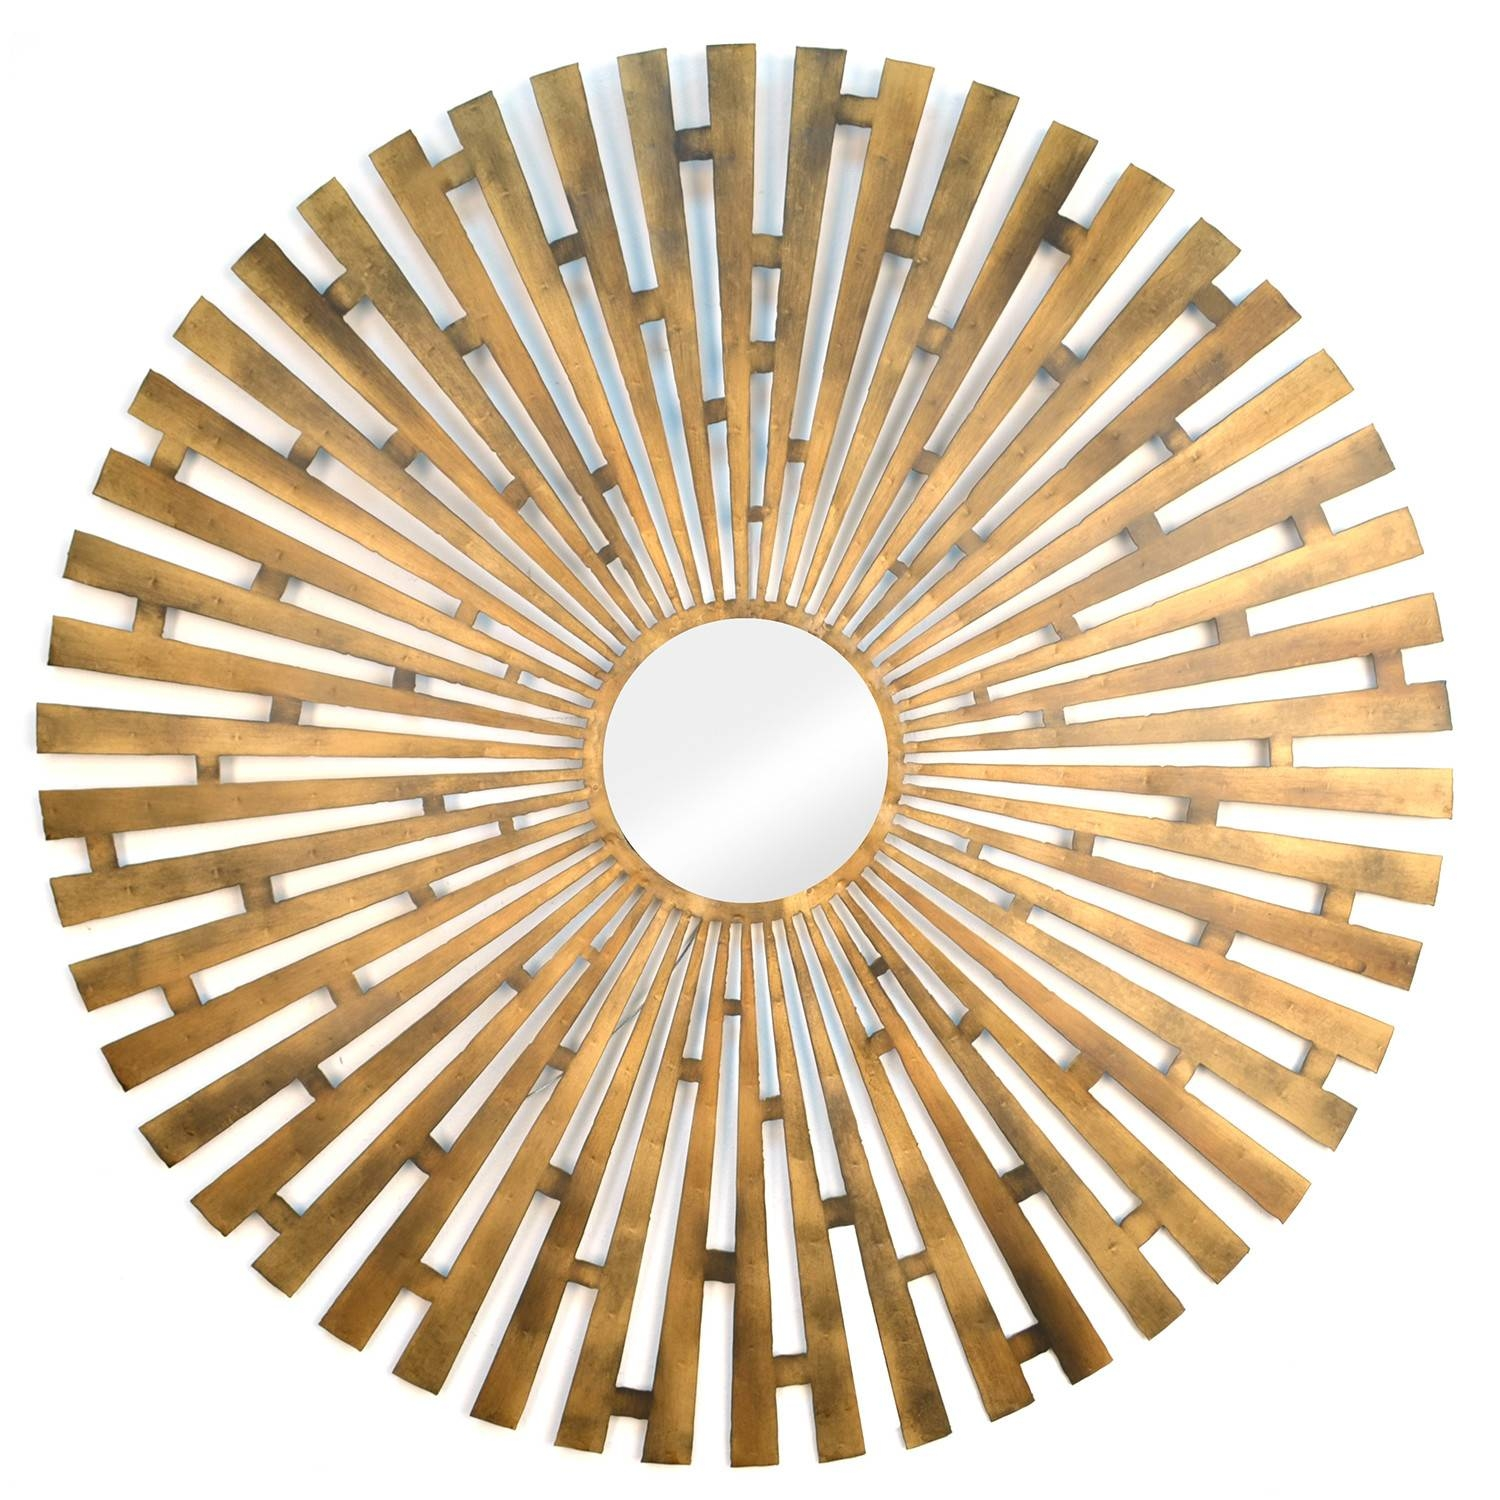 Cream Metal Wall Art Wayfair Geometric Motif Mirror D%c3%a3%c2 Intended For Most Recently Released Geometric Metal Wall Art (View 5 of 20)